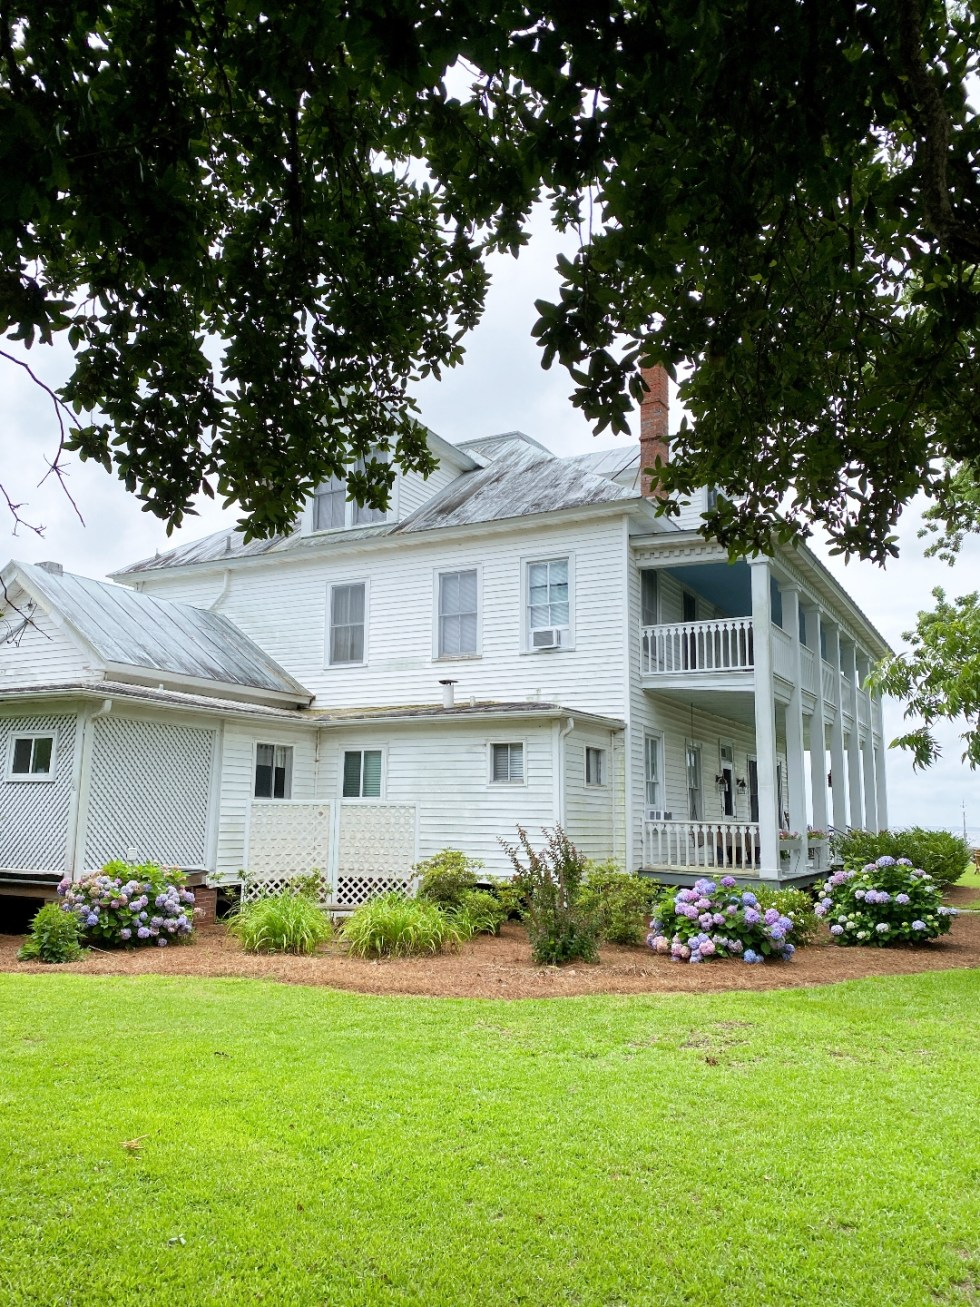 What to Do in Oriental, NC - I'm Fixin' To - @imfixintoblog | Things to do in Oriental NC by popular NC travel blog, I'm Fixin' To: image of a white southern colonial house with purple hydrangeas.